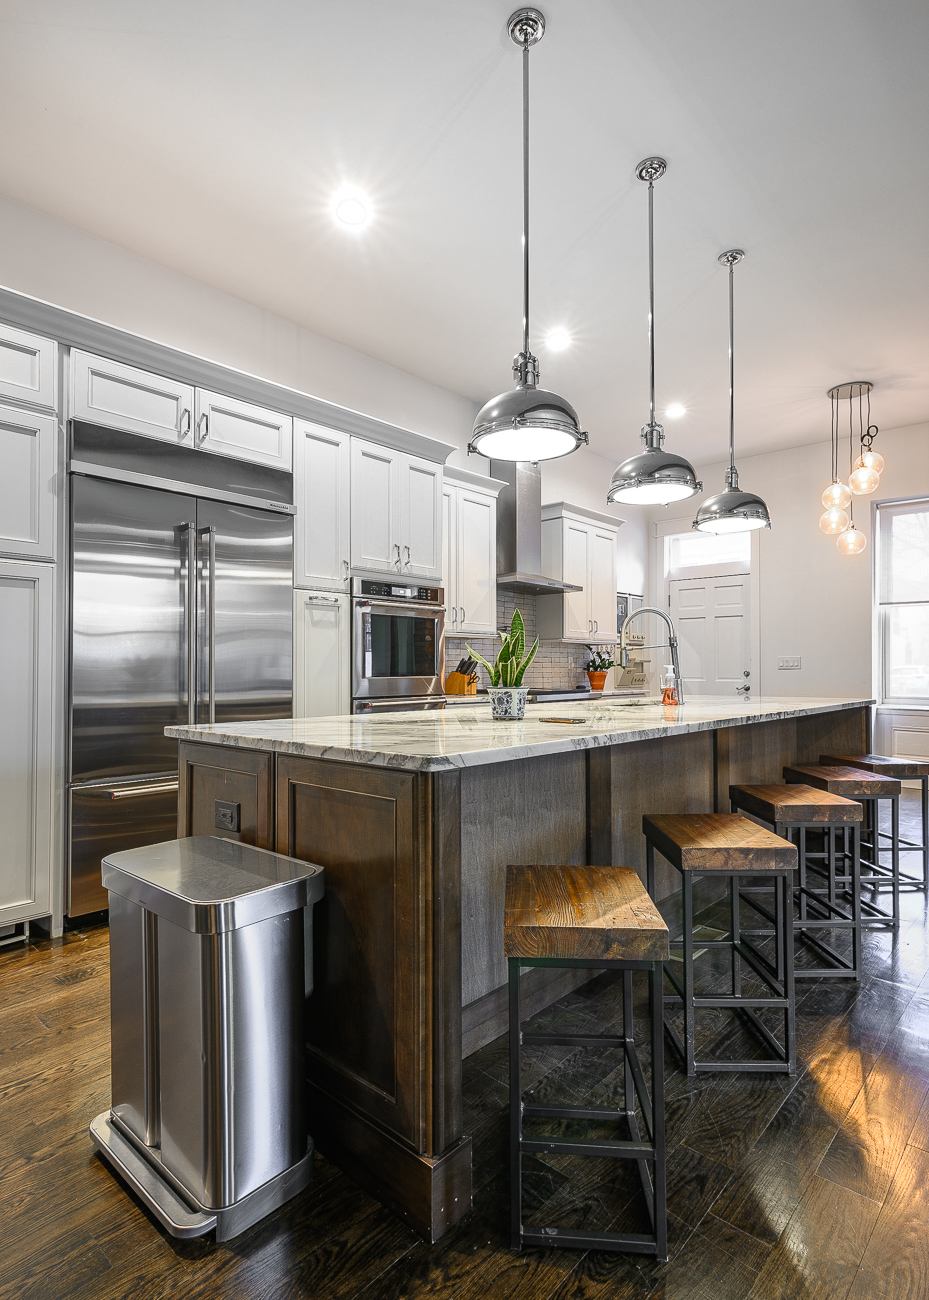 Eric loves to cook, so installing a gourmet kitchen was a priority when construction was underway to turn the formerly vacant building into a brand new residence. / Image: Phil Armstrong // Published: 12.6.19